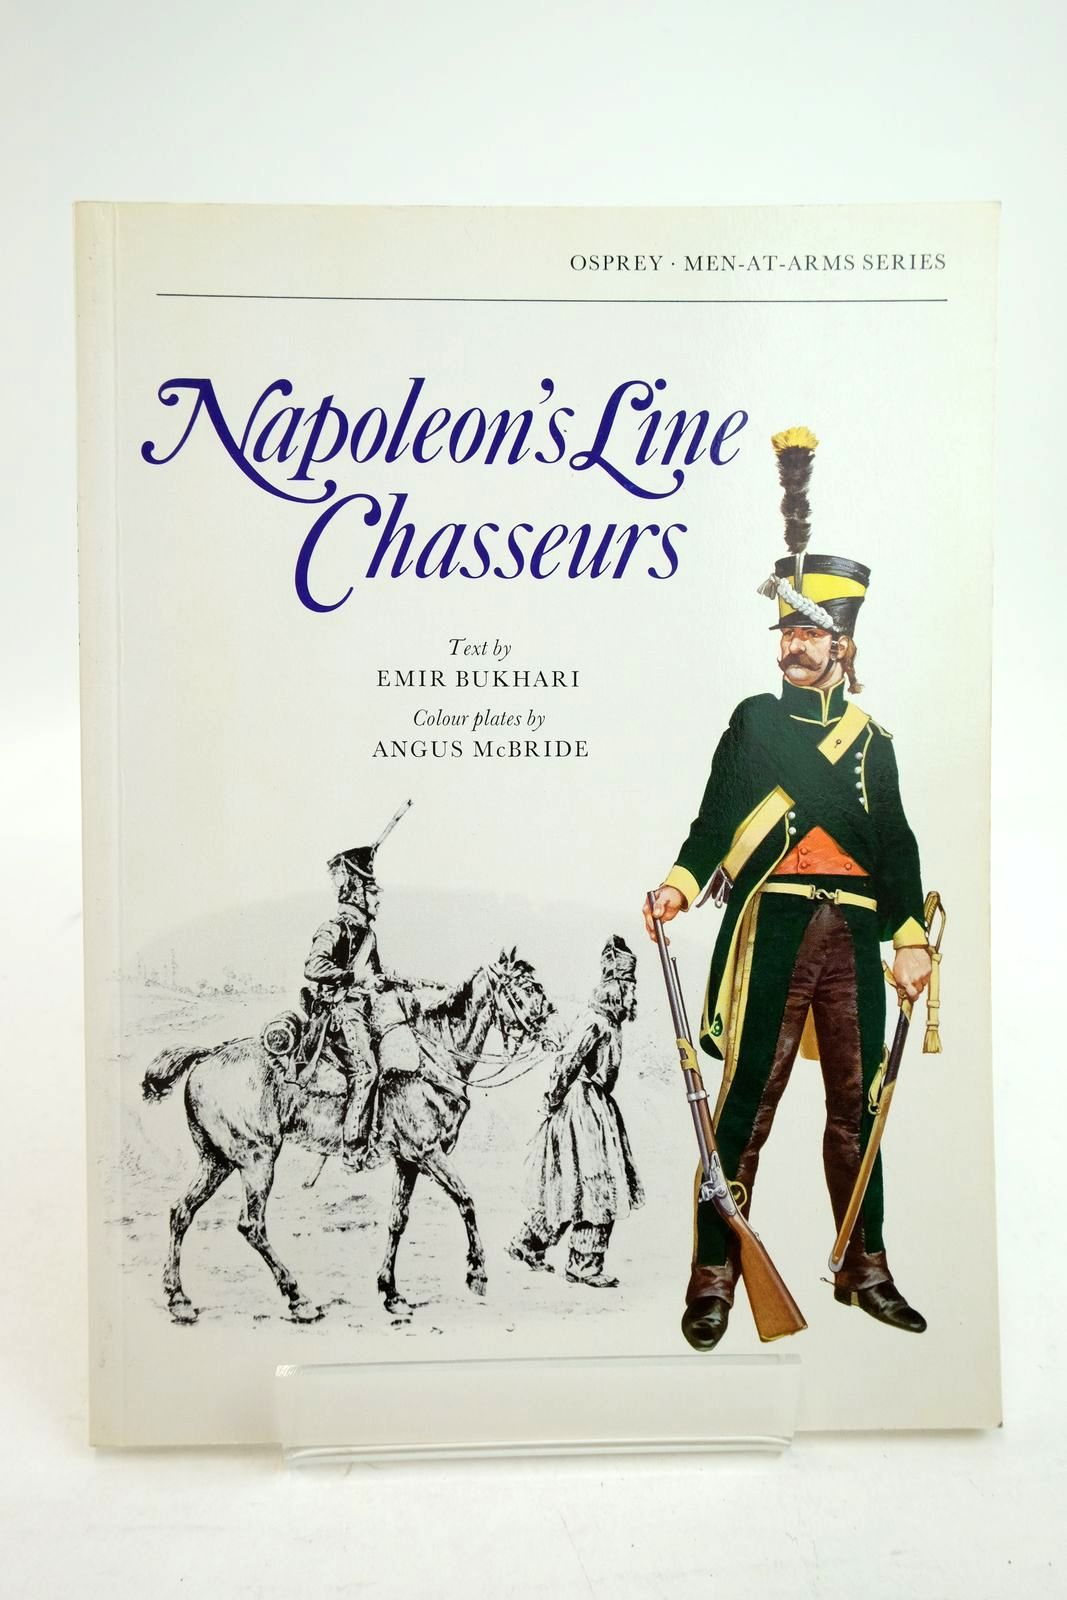 Photo of NAPOLEON'S LINE CHASSEURS (MEN-AT-ARMS) written by Bukhari, Emir illustrated by McBride, Angus published by Osprey Publishing (STOCK CODE: 2134730)  for sale by Stella & Rose's Books